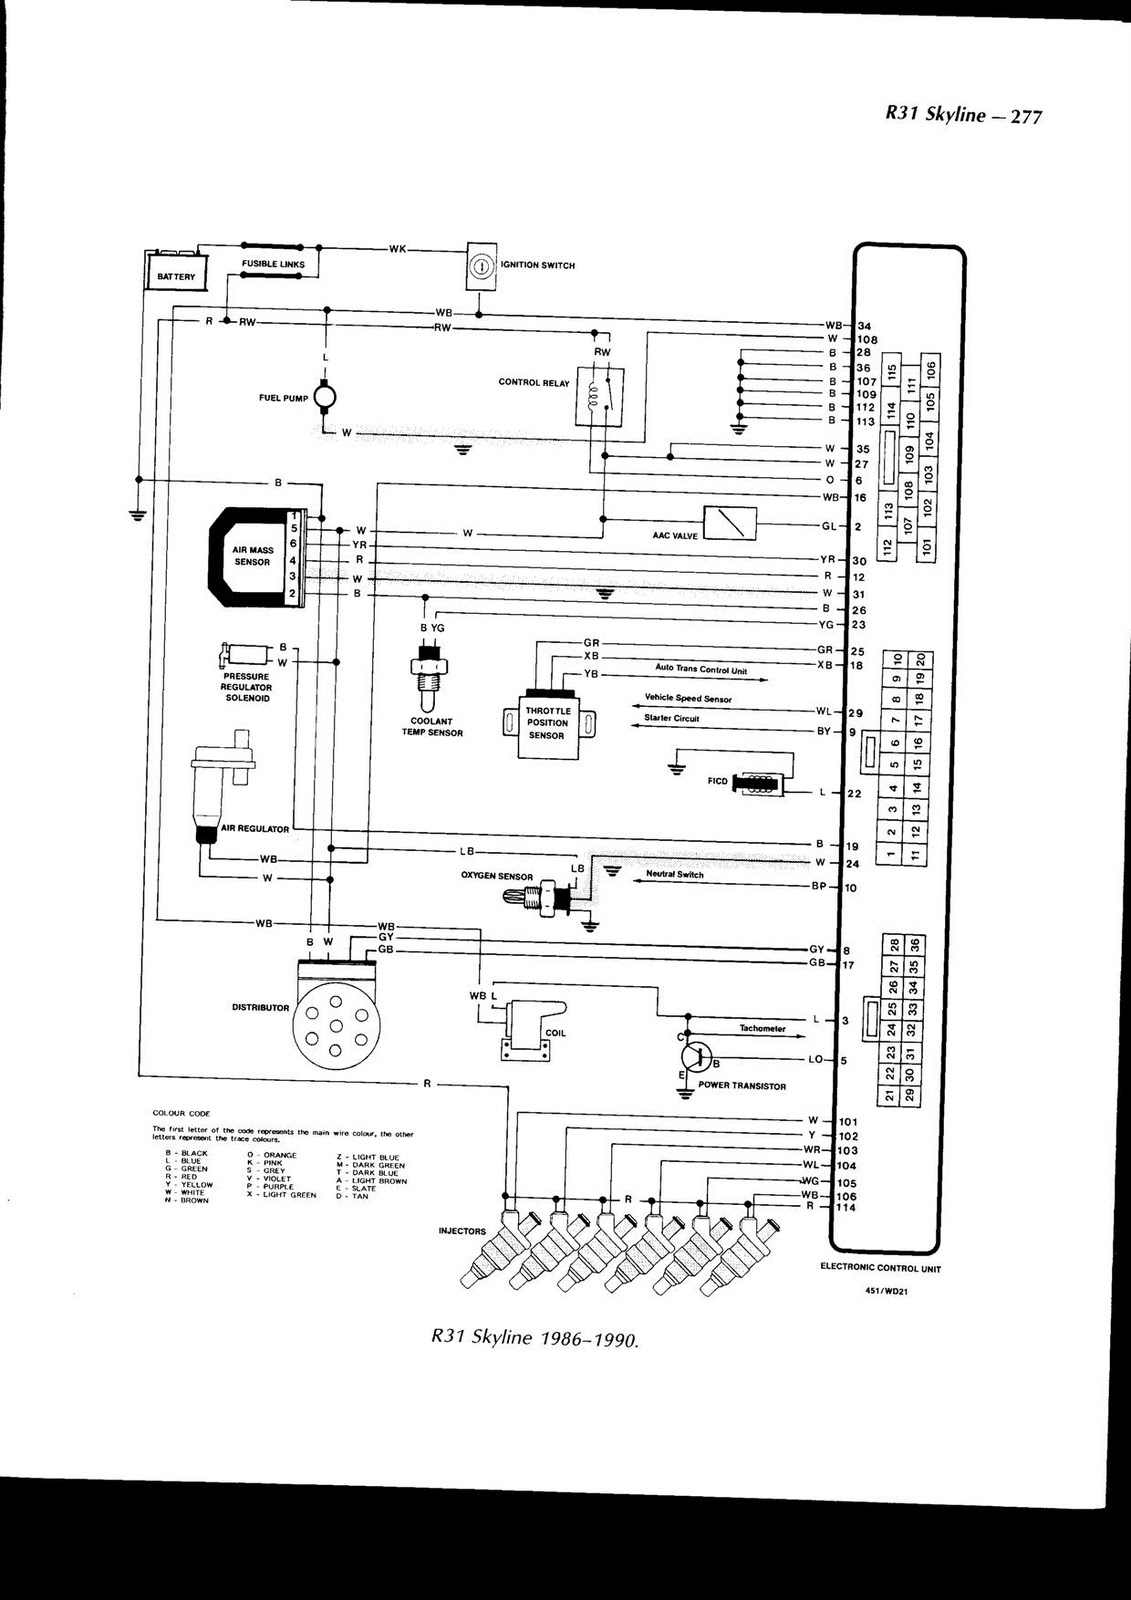 Fleetwood Rv Battery Wiring Diagram Also 1997 Ford F53 Wiring Diagram